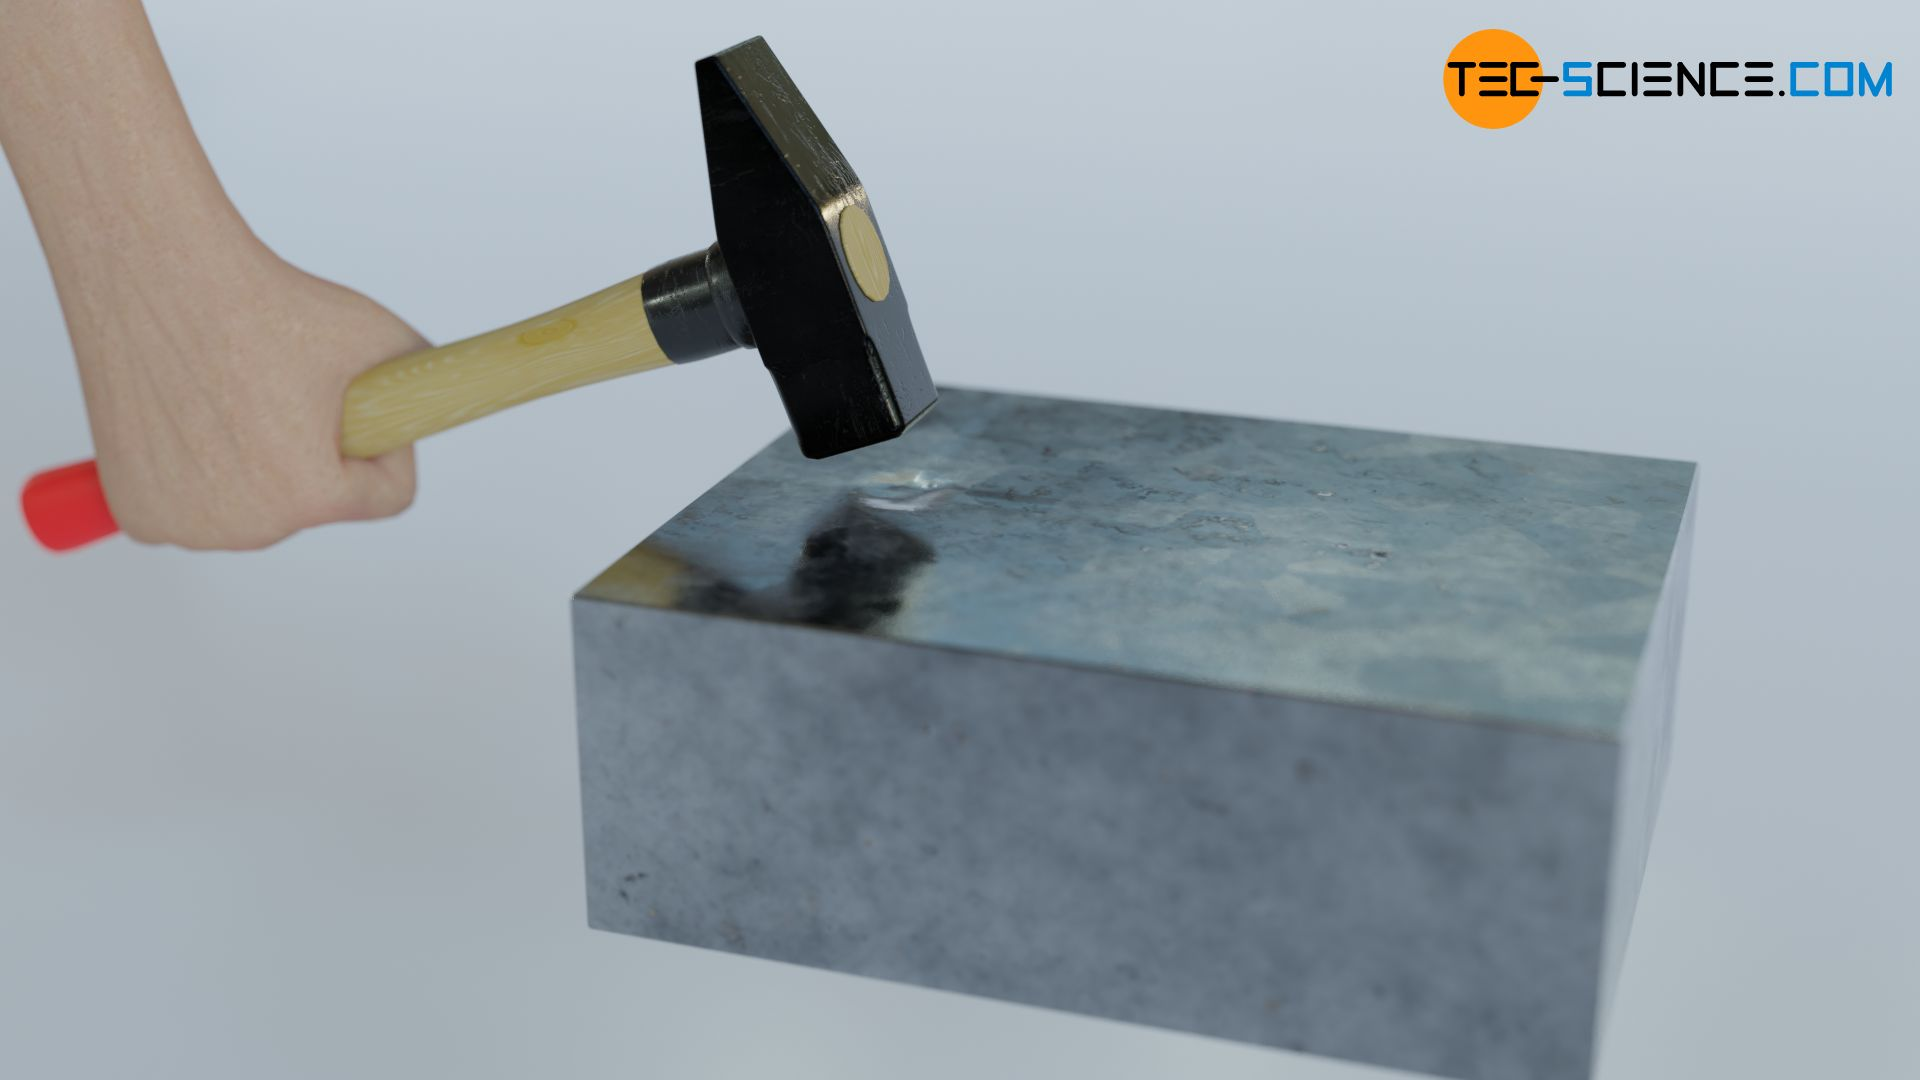 Setting the molecular structure of an object in vibration by hammer blows